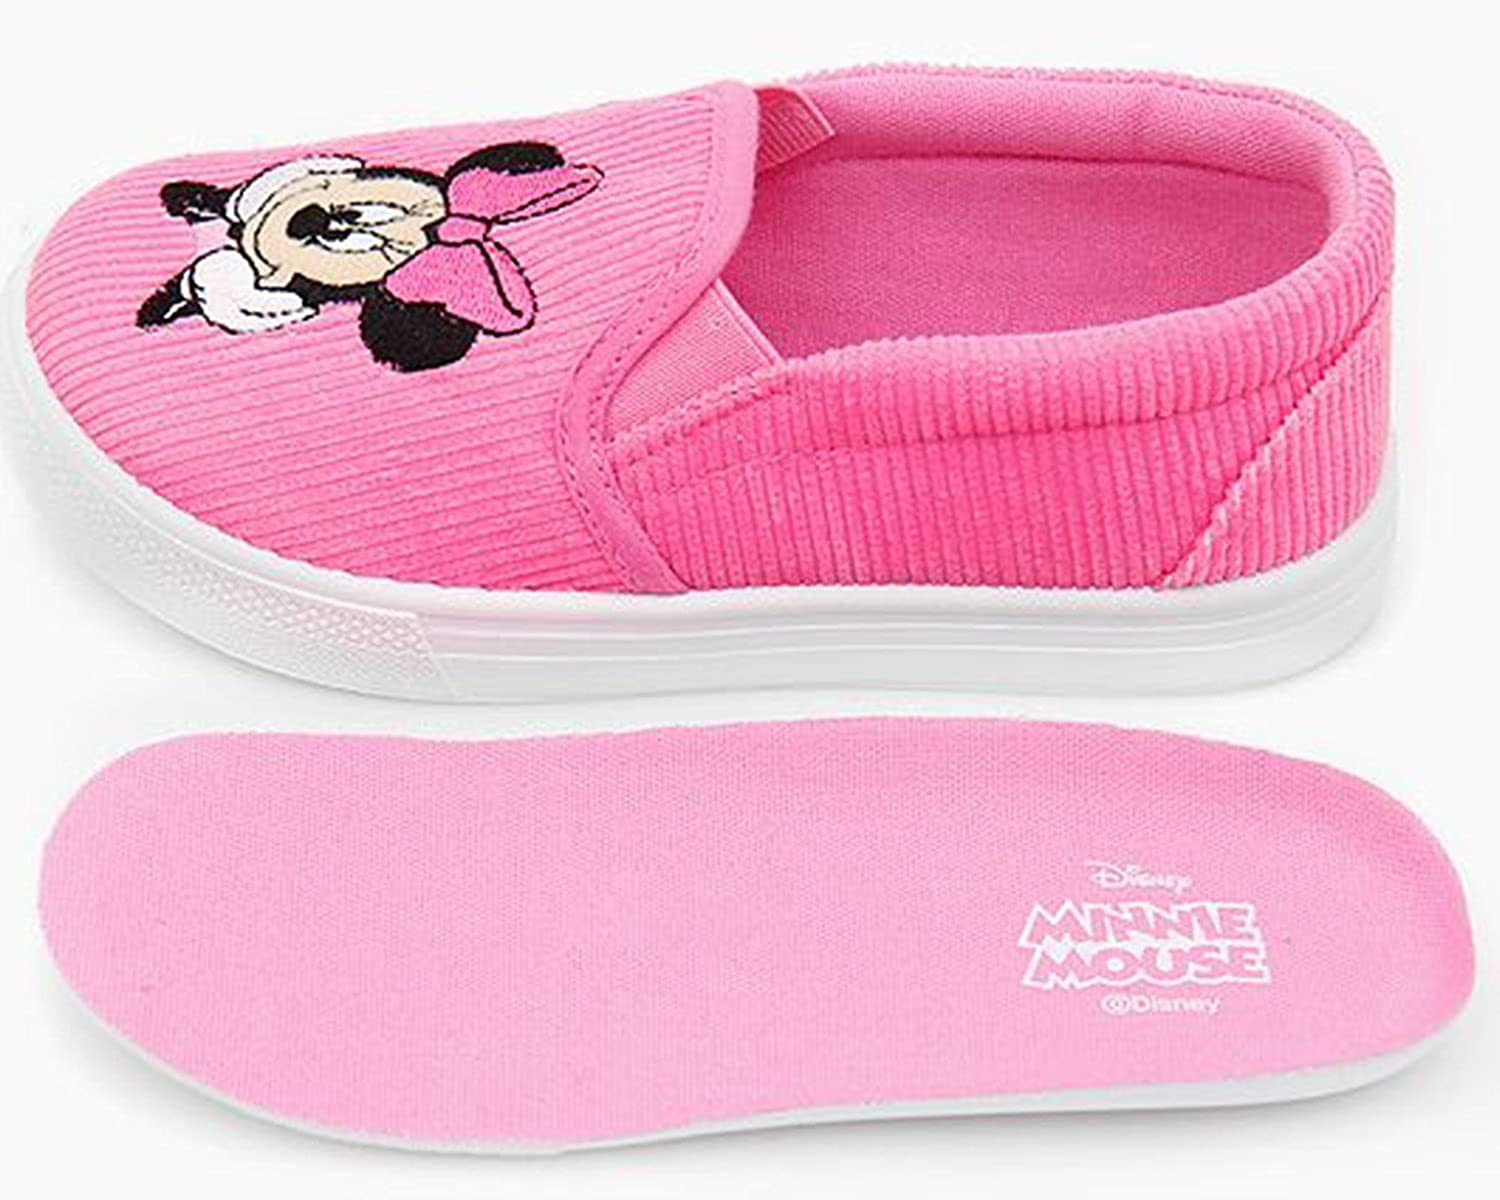 Joah Store Girls Slip-On Sneaker Minnie Mouse Face Pink Shoes Parallel Import//Generic Product